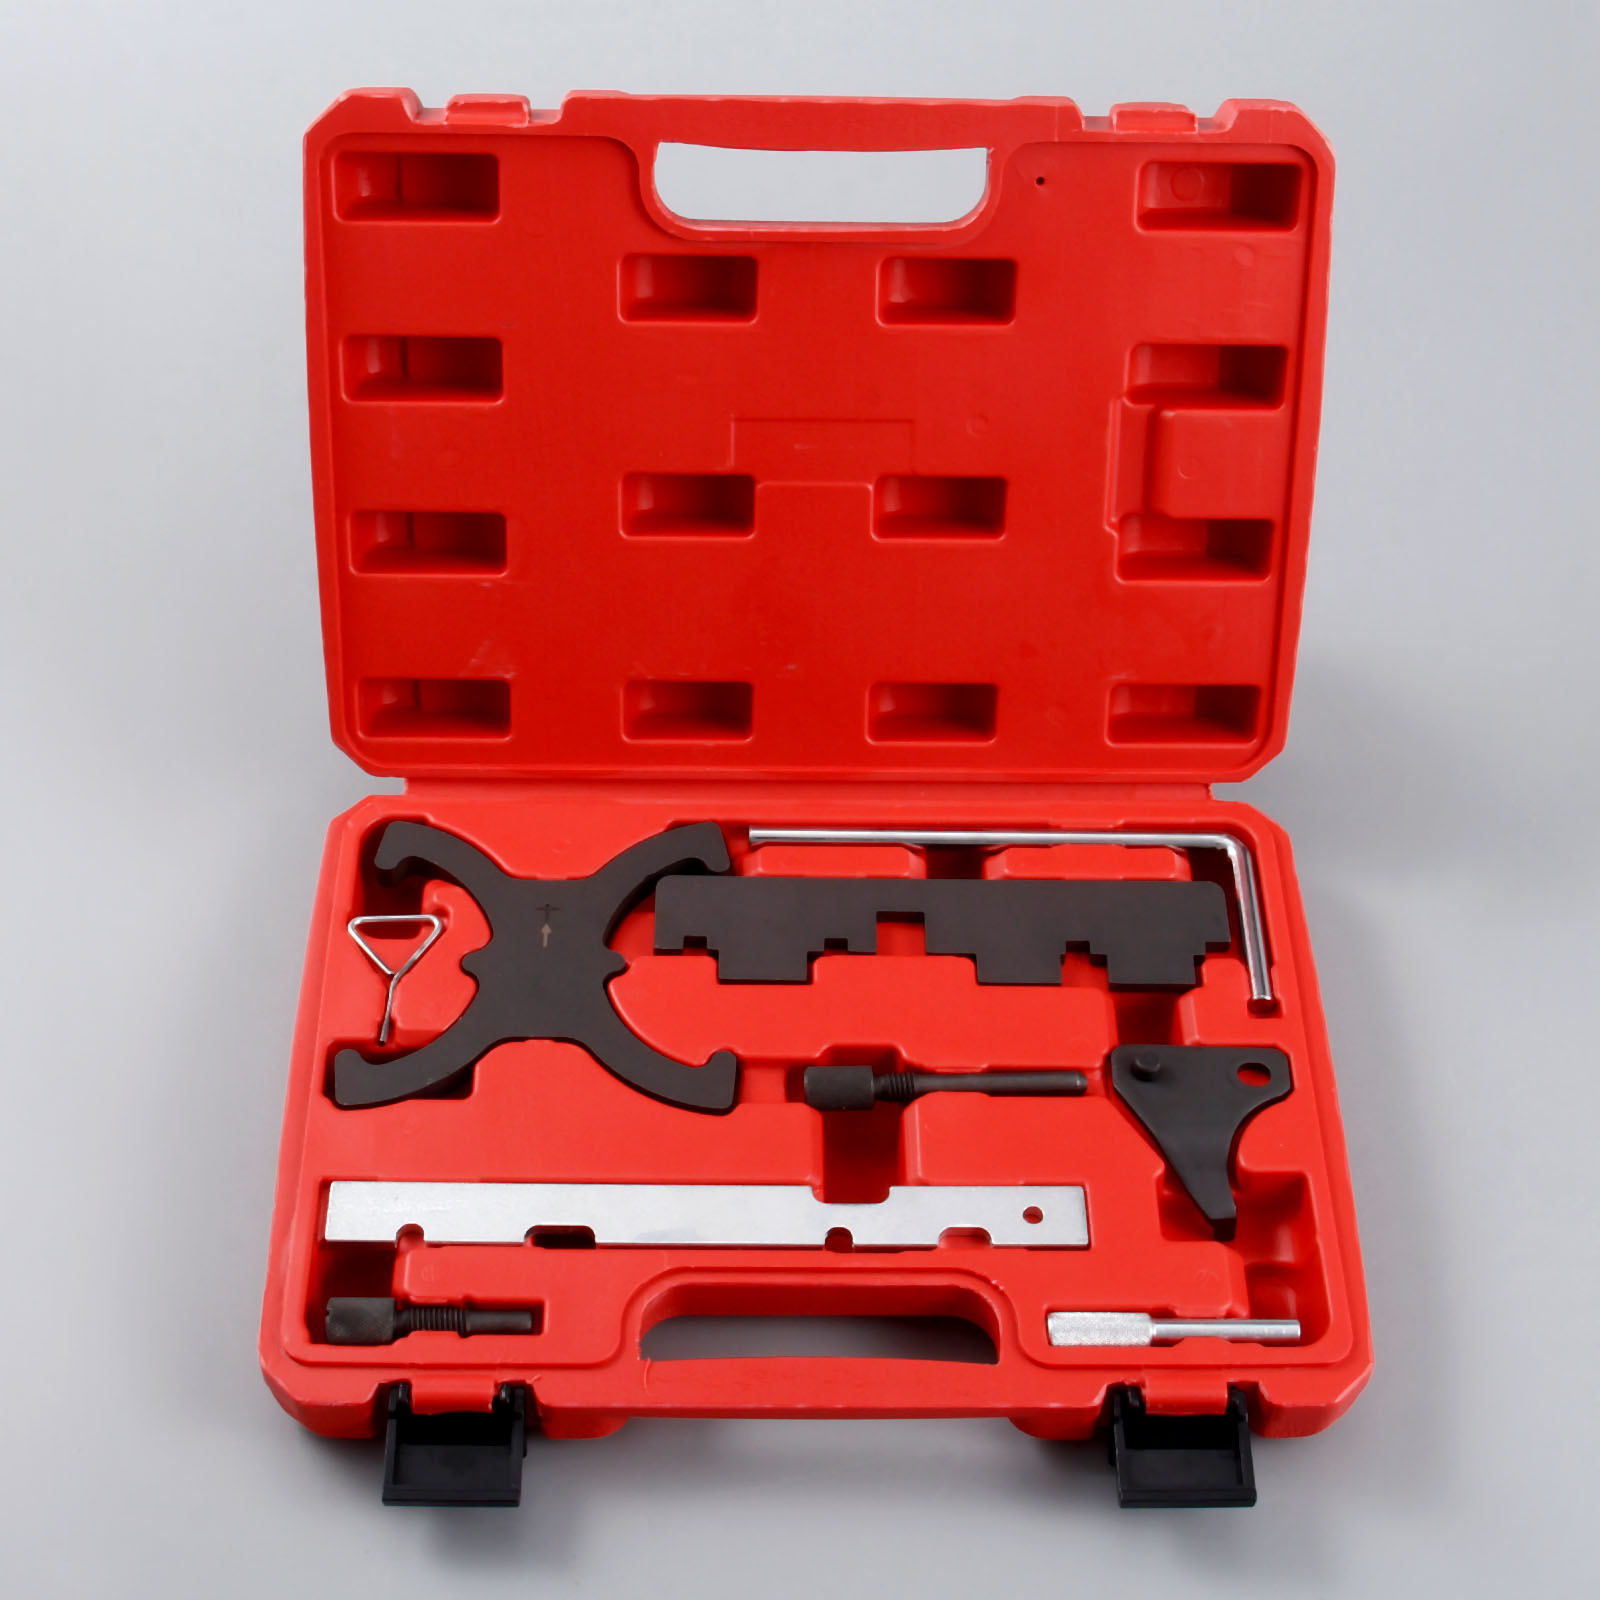 Yetaha Engine Camshaft Timing Locking Tool Set Kit For Ford Focus 1.6 For Mazada 1.6 Eco Boost For Volvo